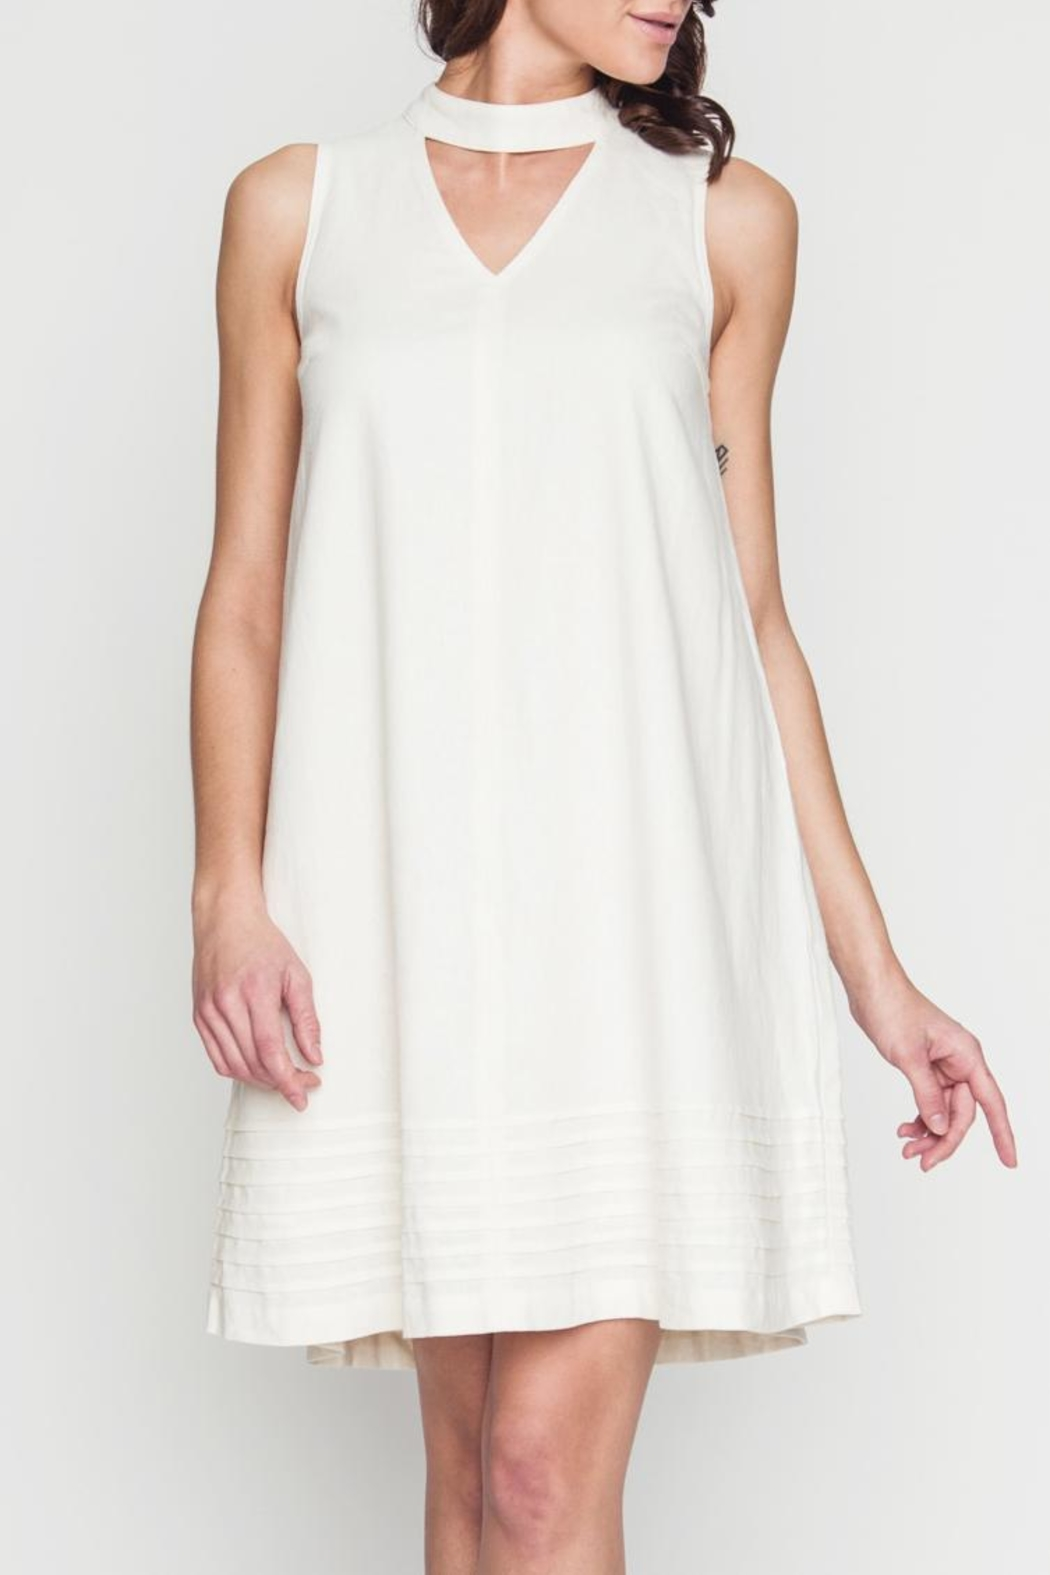 Movint Avril White Dress - Front Cropped Image